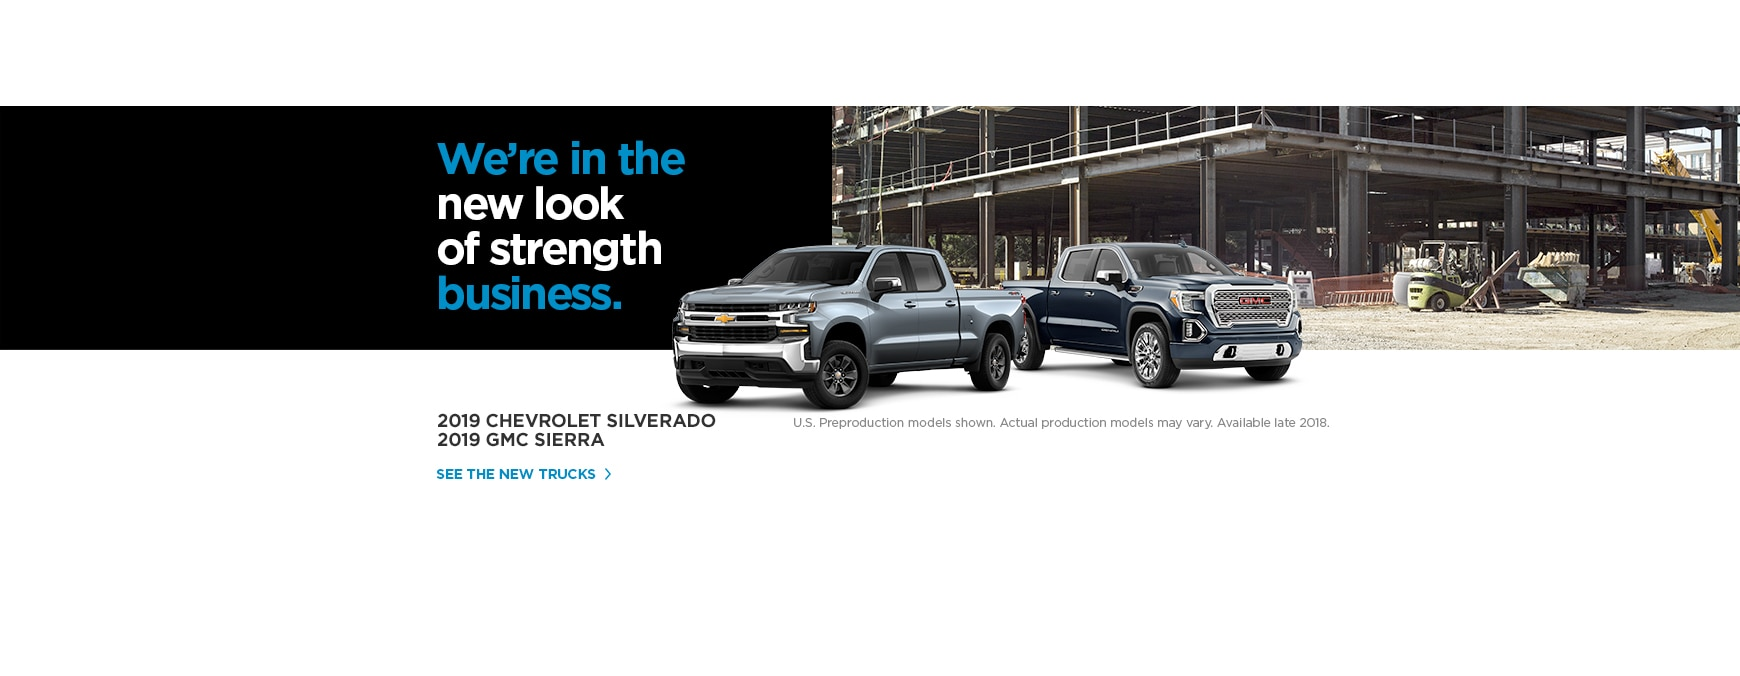 The all-new 2019 Chevrolet Silverado and GMC Sierra.